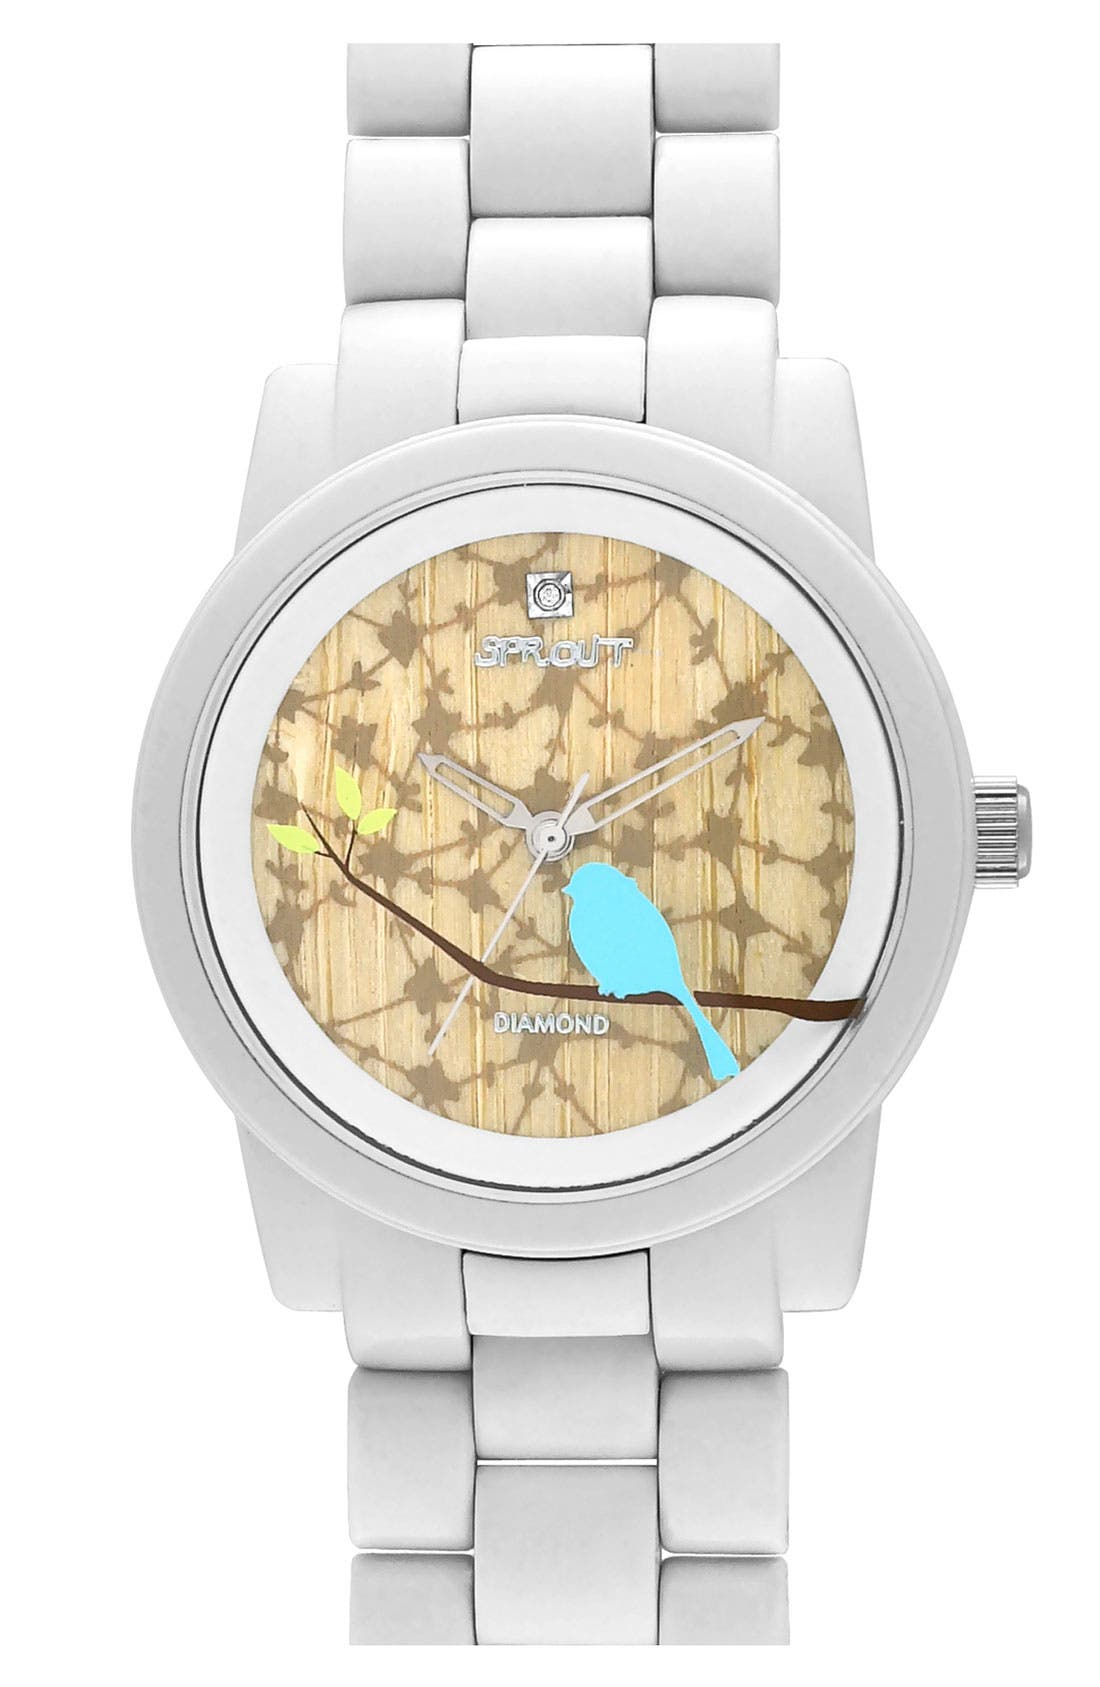 Main Image - SPROUT™ Watches Print Dial Bracelet Watch, 38mm